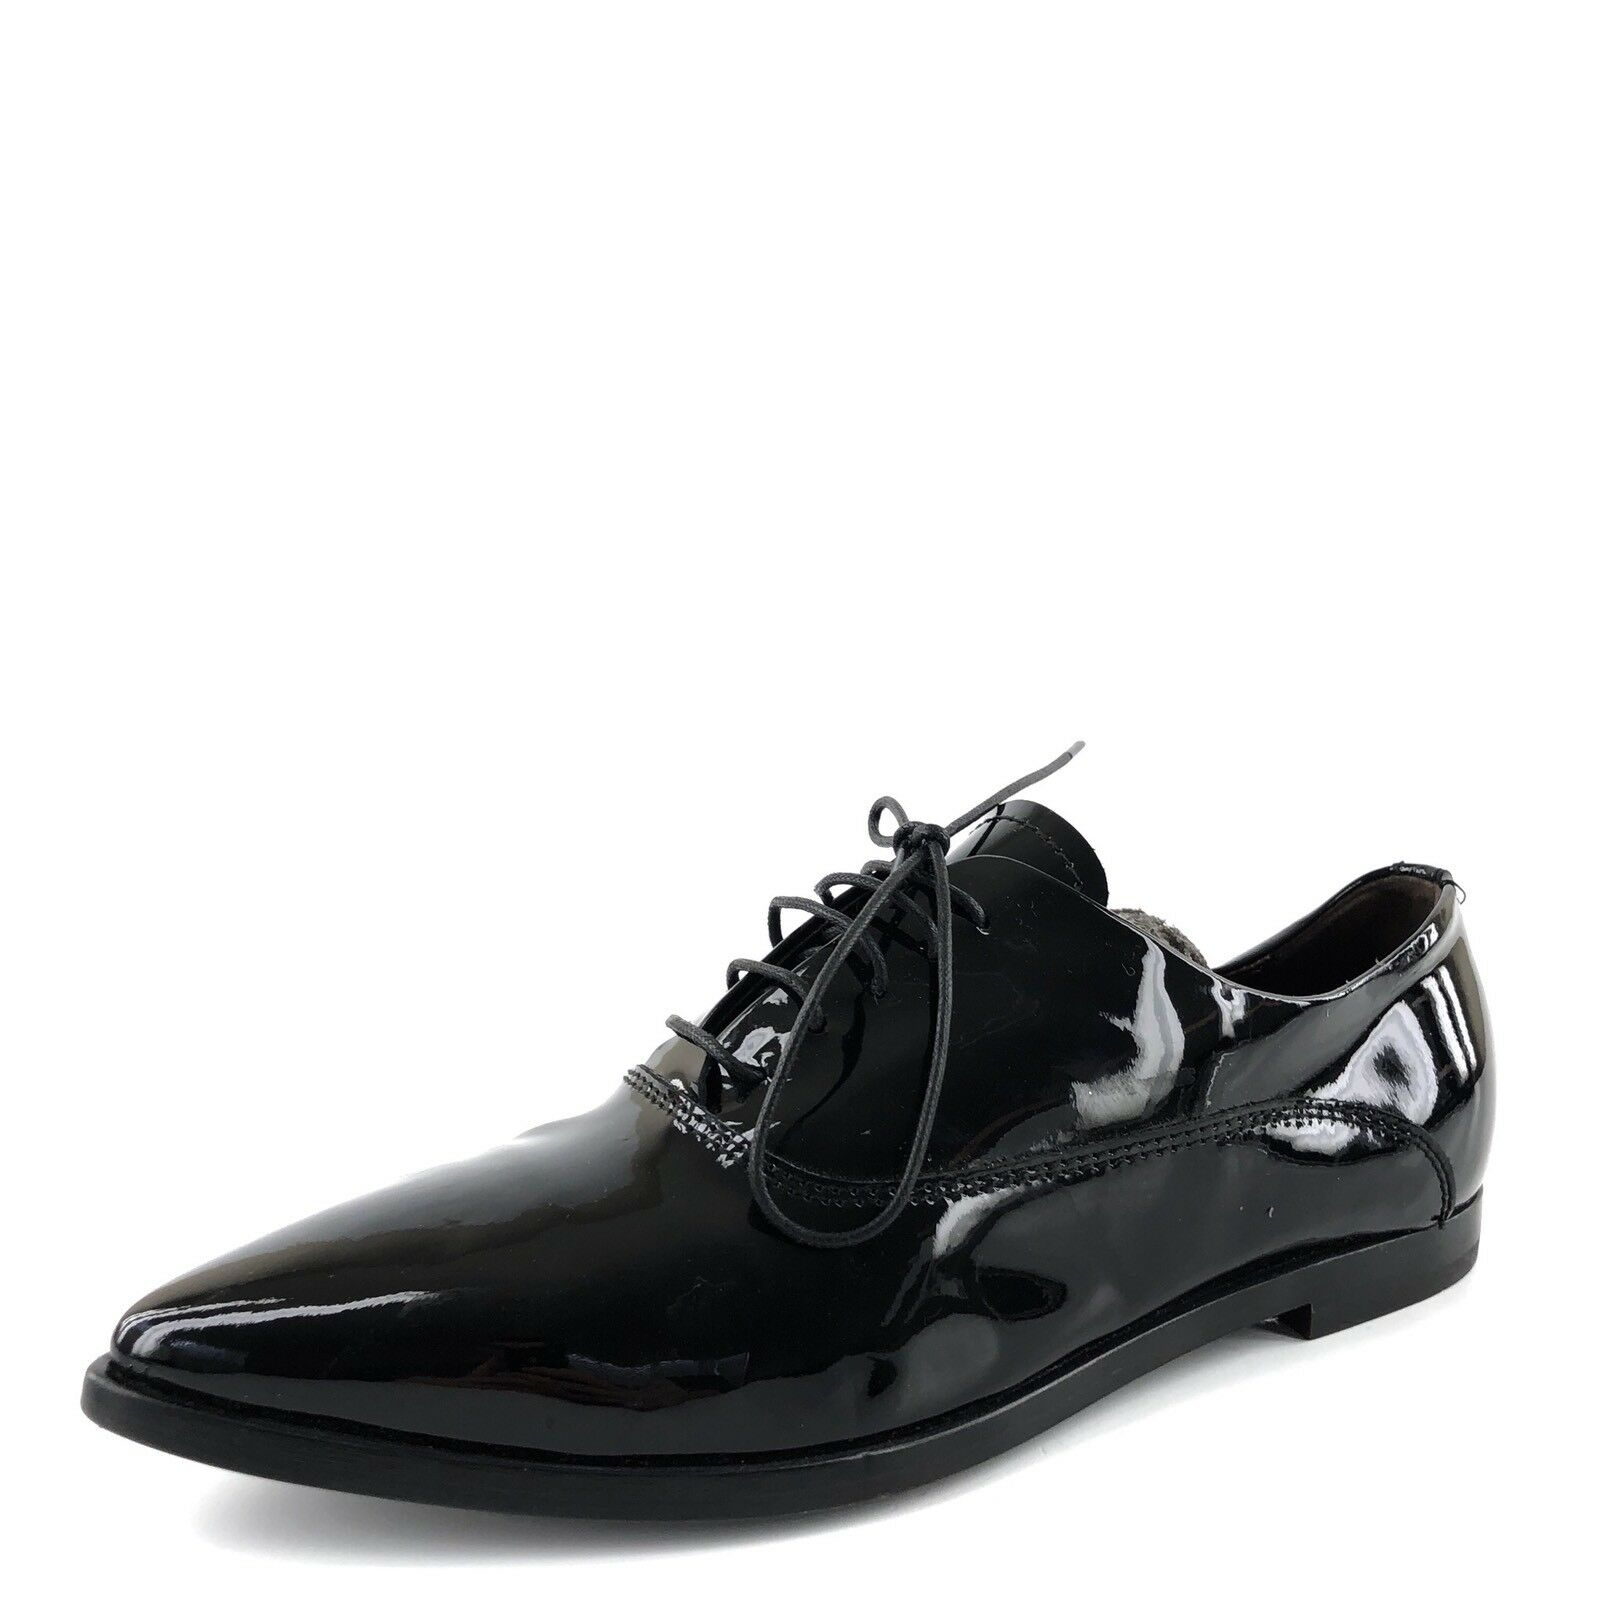 AGL Pointy Toe Black Patent Leather Lace Up Casual Oxfords Womens Size 35 M